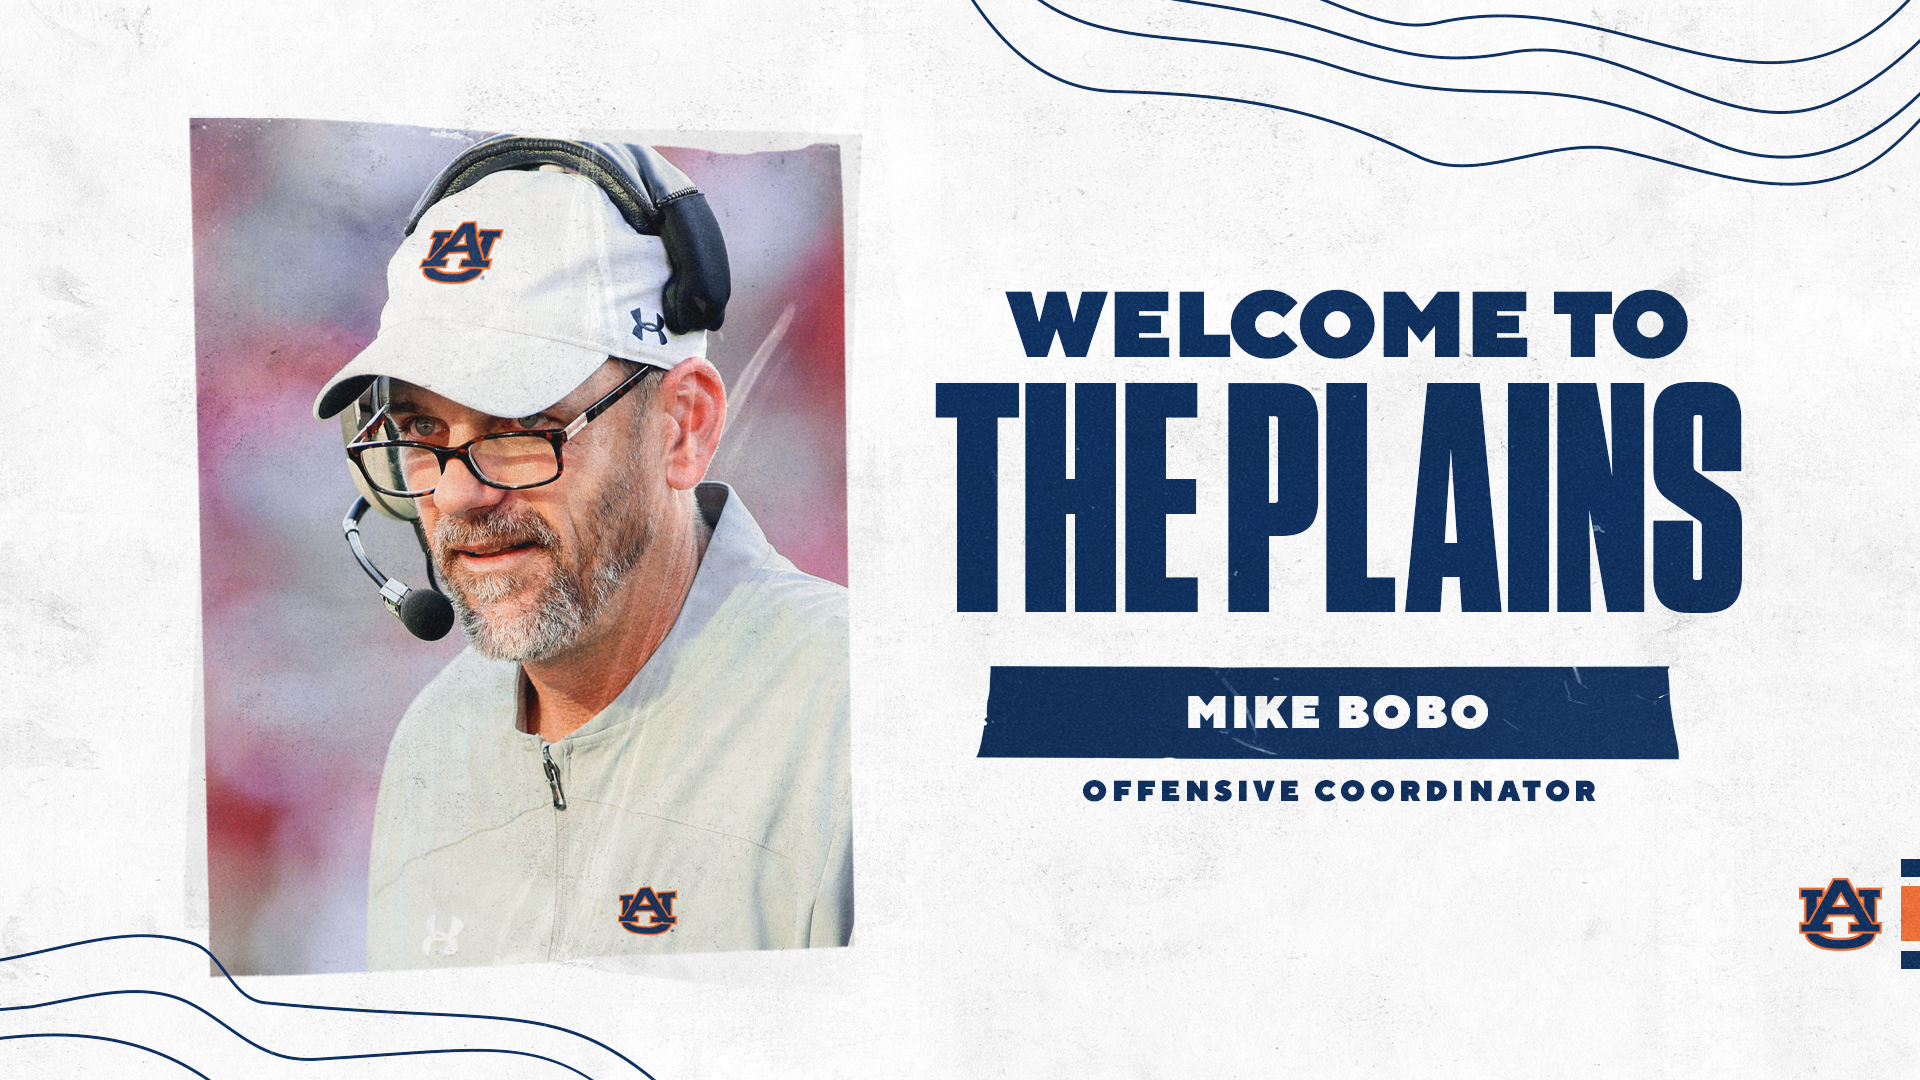 Welcome to The Plains Mike Bobo - Offensive Coordinator